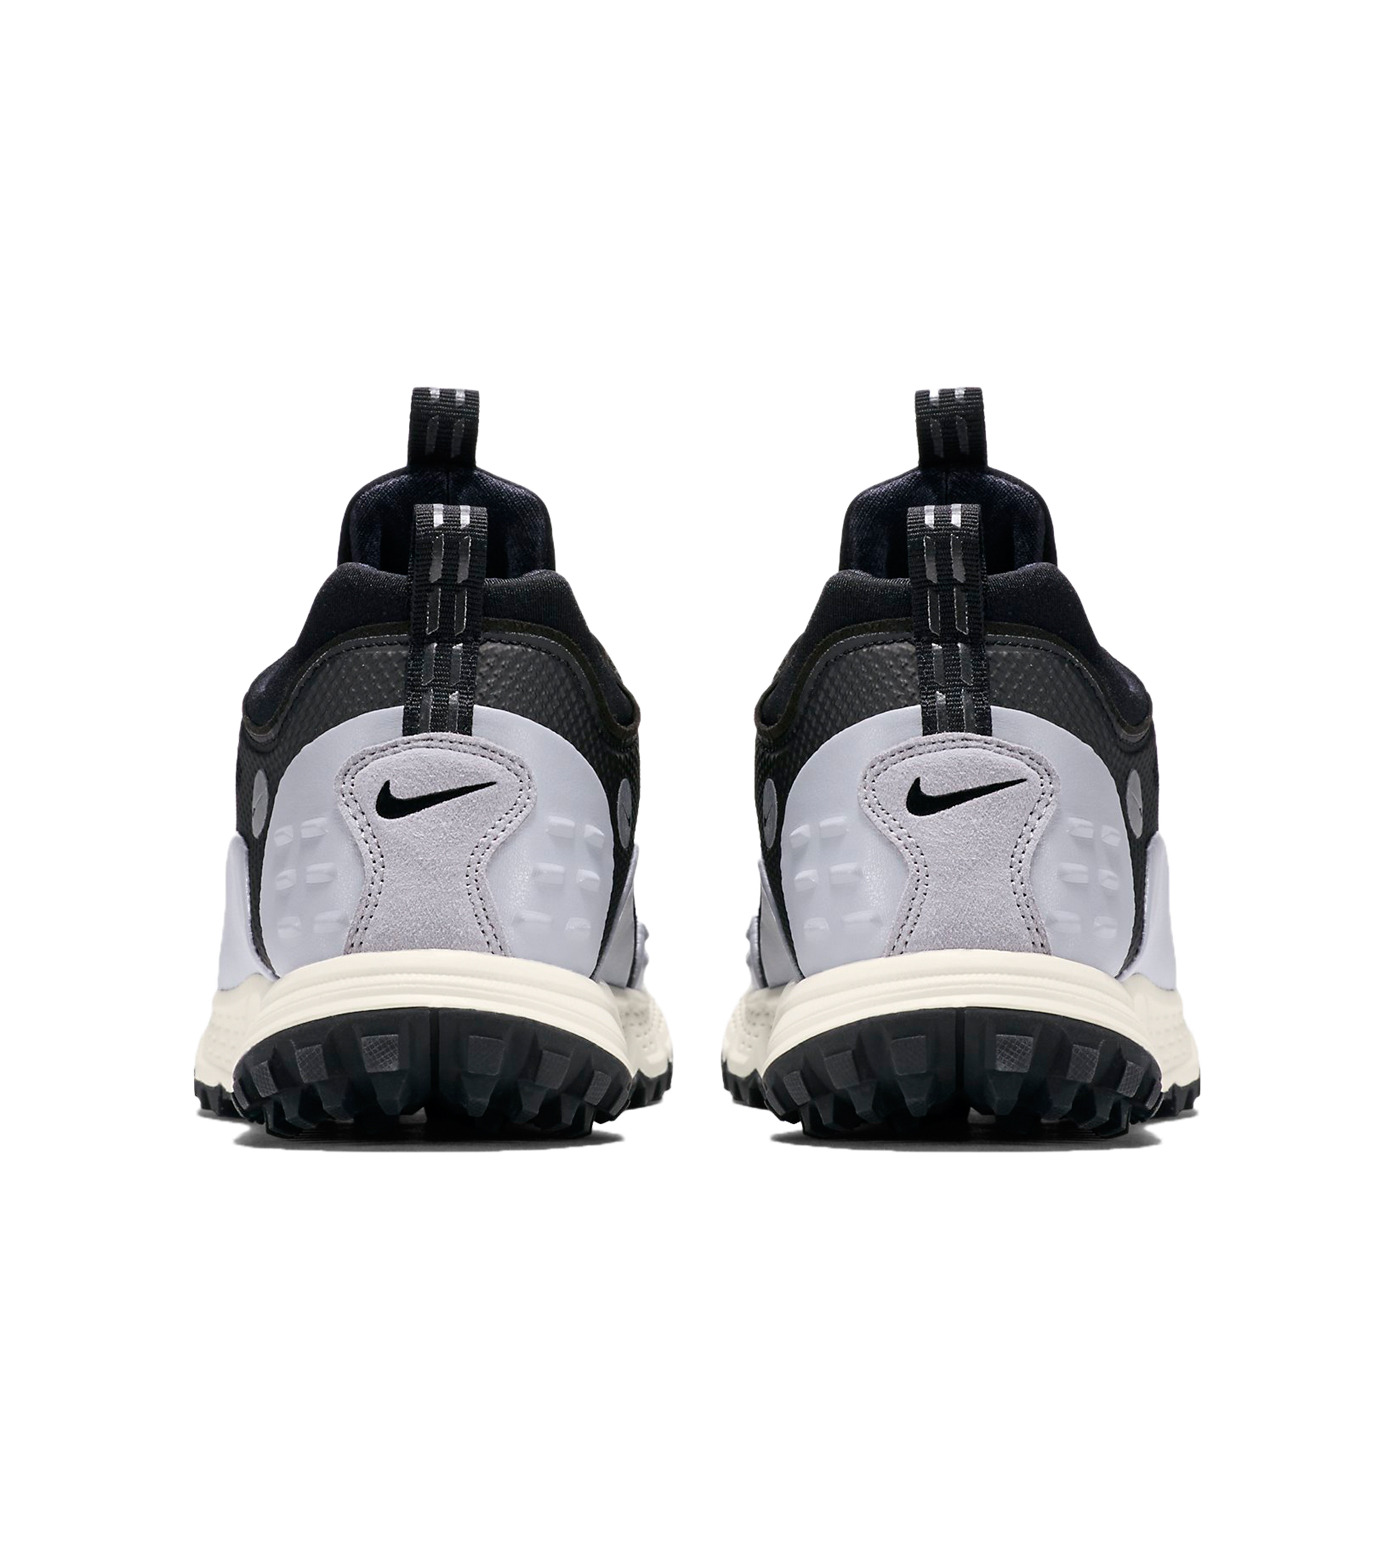 NIKE(ナイキ)のAIR ZOOM ALBIS '16-GRAY(シューズ/shoes)-904334-001-11 拡大詳細画像5